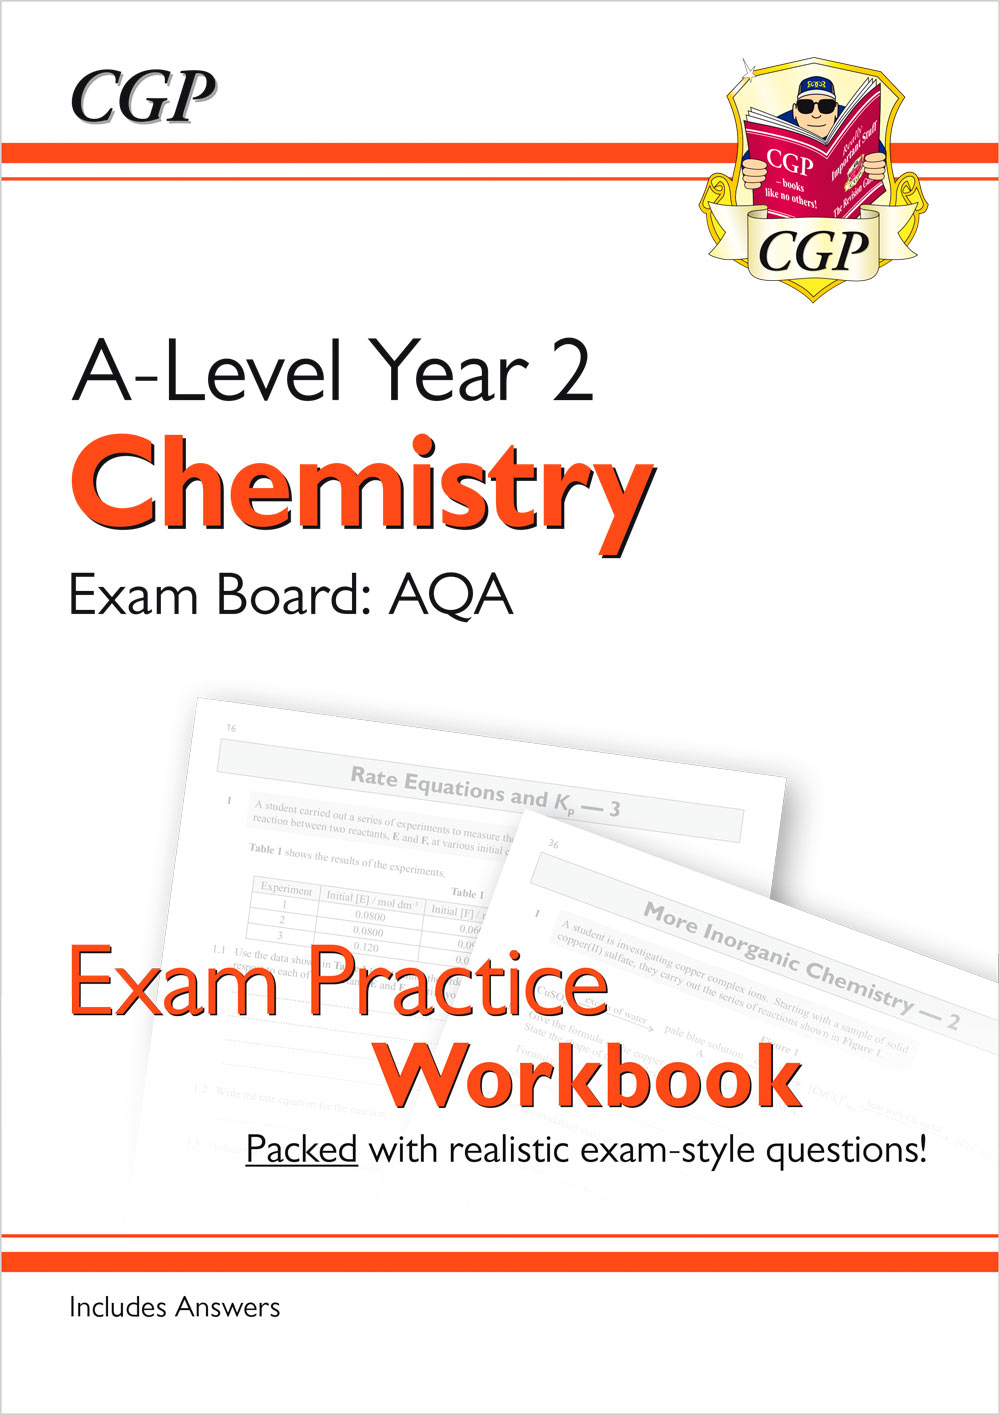 CAQ61 - New A-Level Chemistry for 2018: AQA Year 2 Exam Practice Workbook - includes Answers